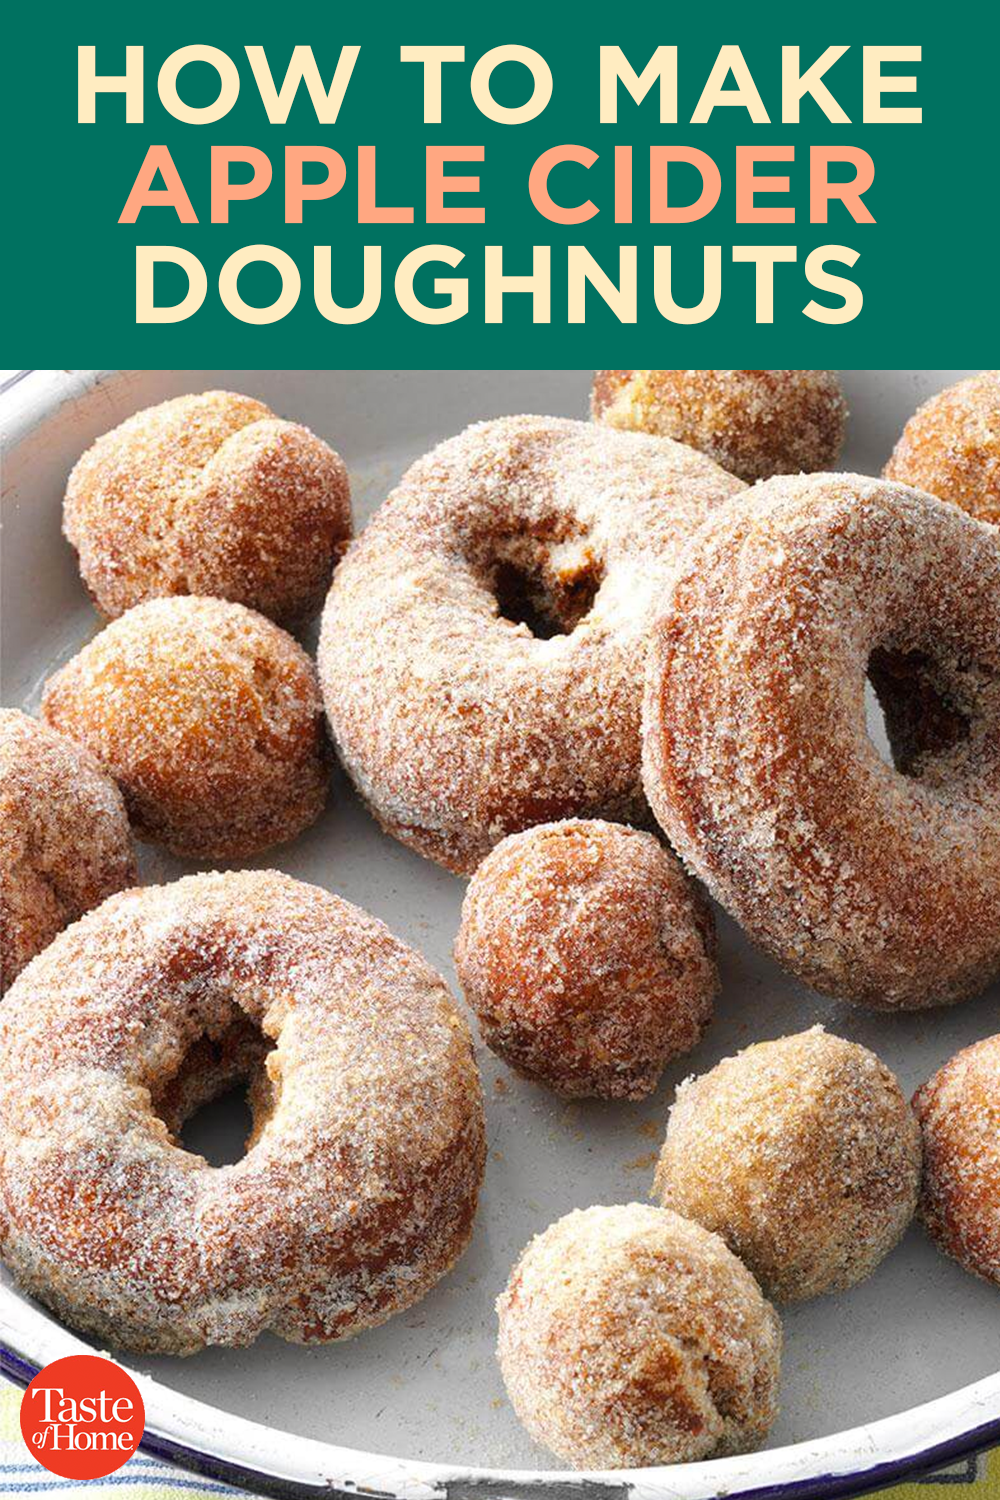 How To Make Apple Cider Doughnuts As Good As The Ones At The Orchard Cider Donuts Recipe Apple Cider Donuts Recipe Apple Cider Donuts